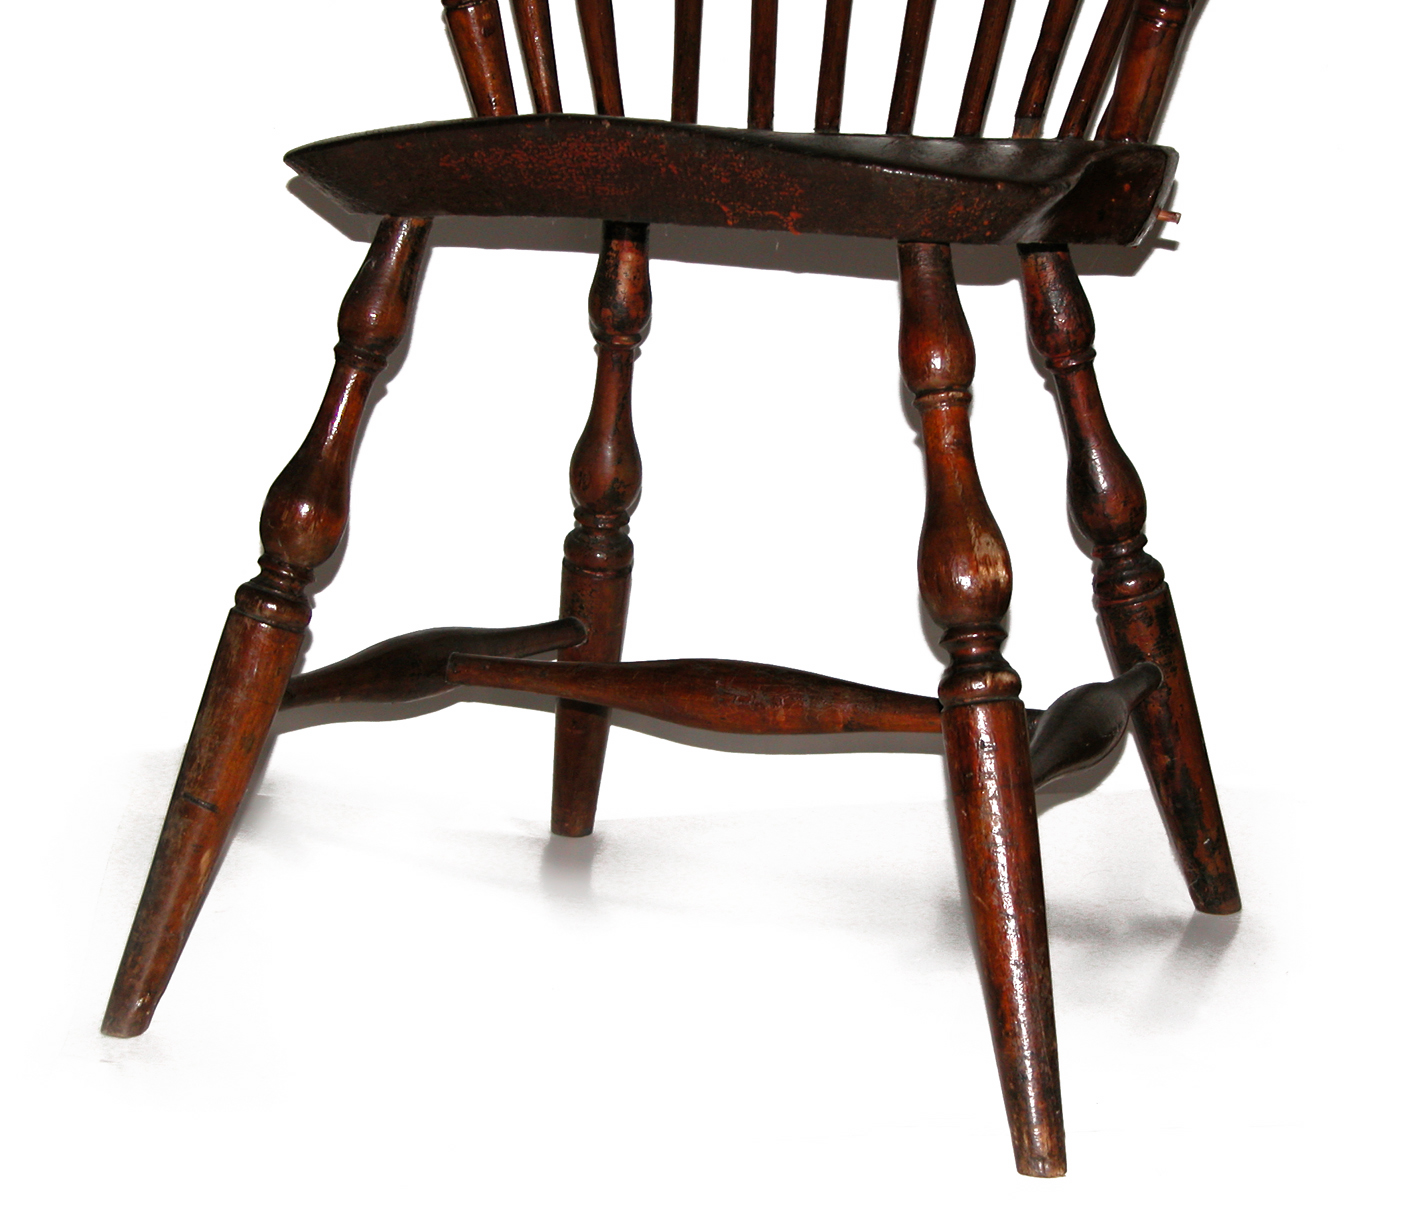 Antique Windsor Chairs For Sale Wooden Baby High Contemporary Makers Chair With Repairs